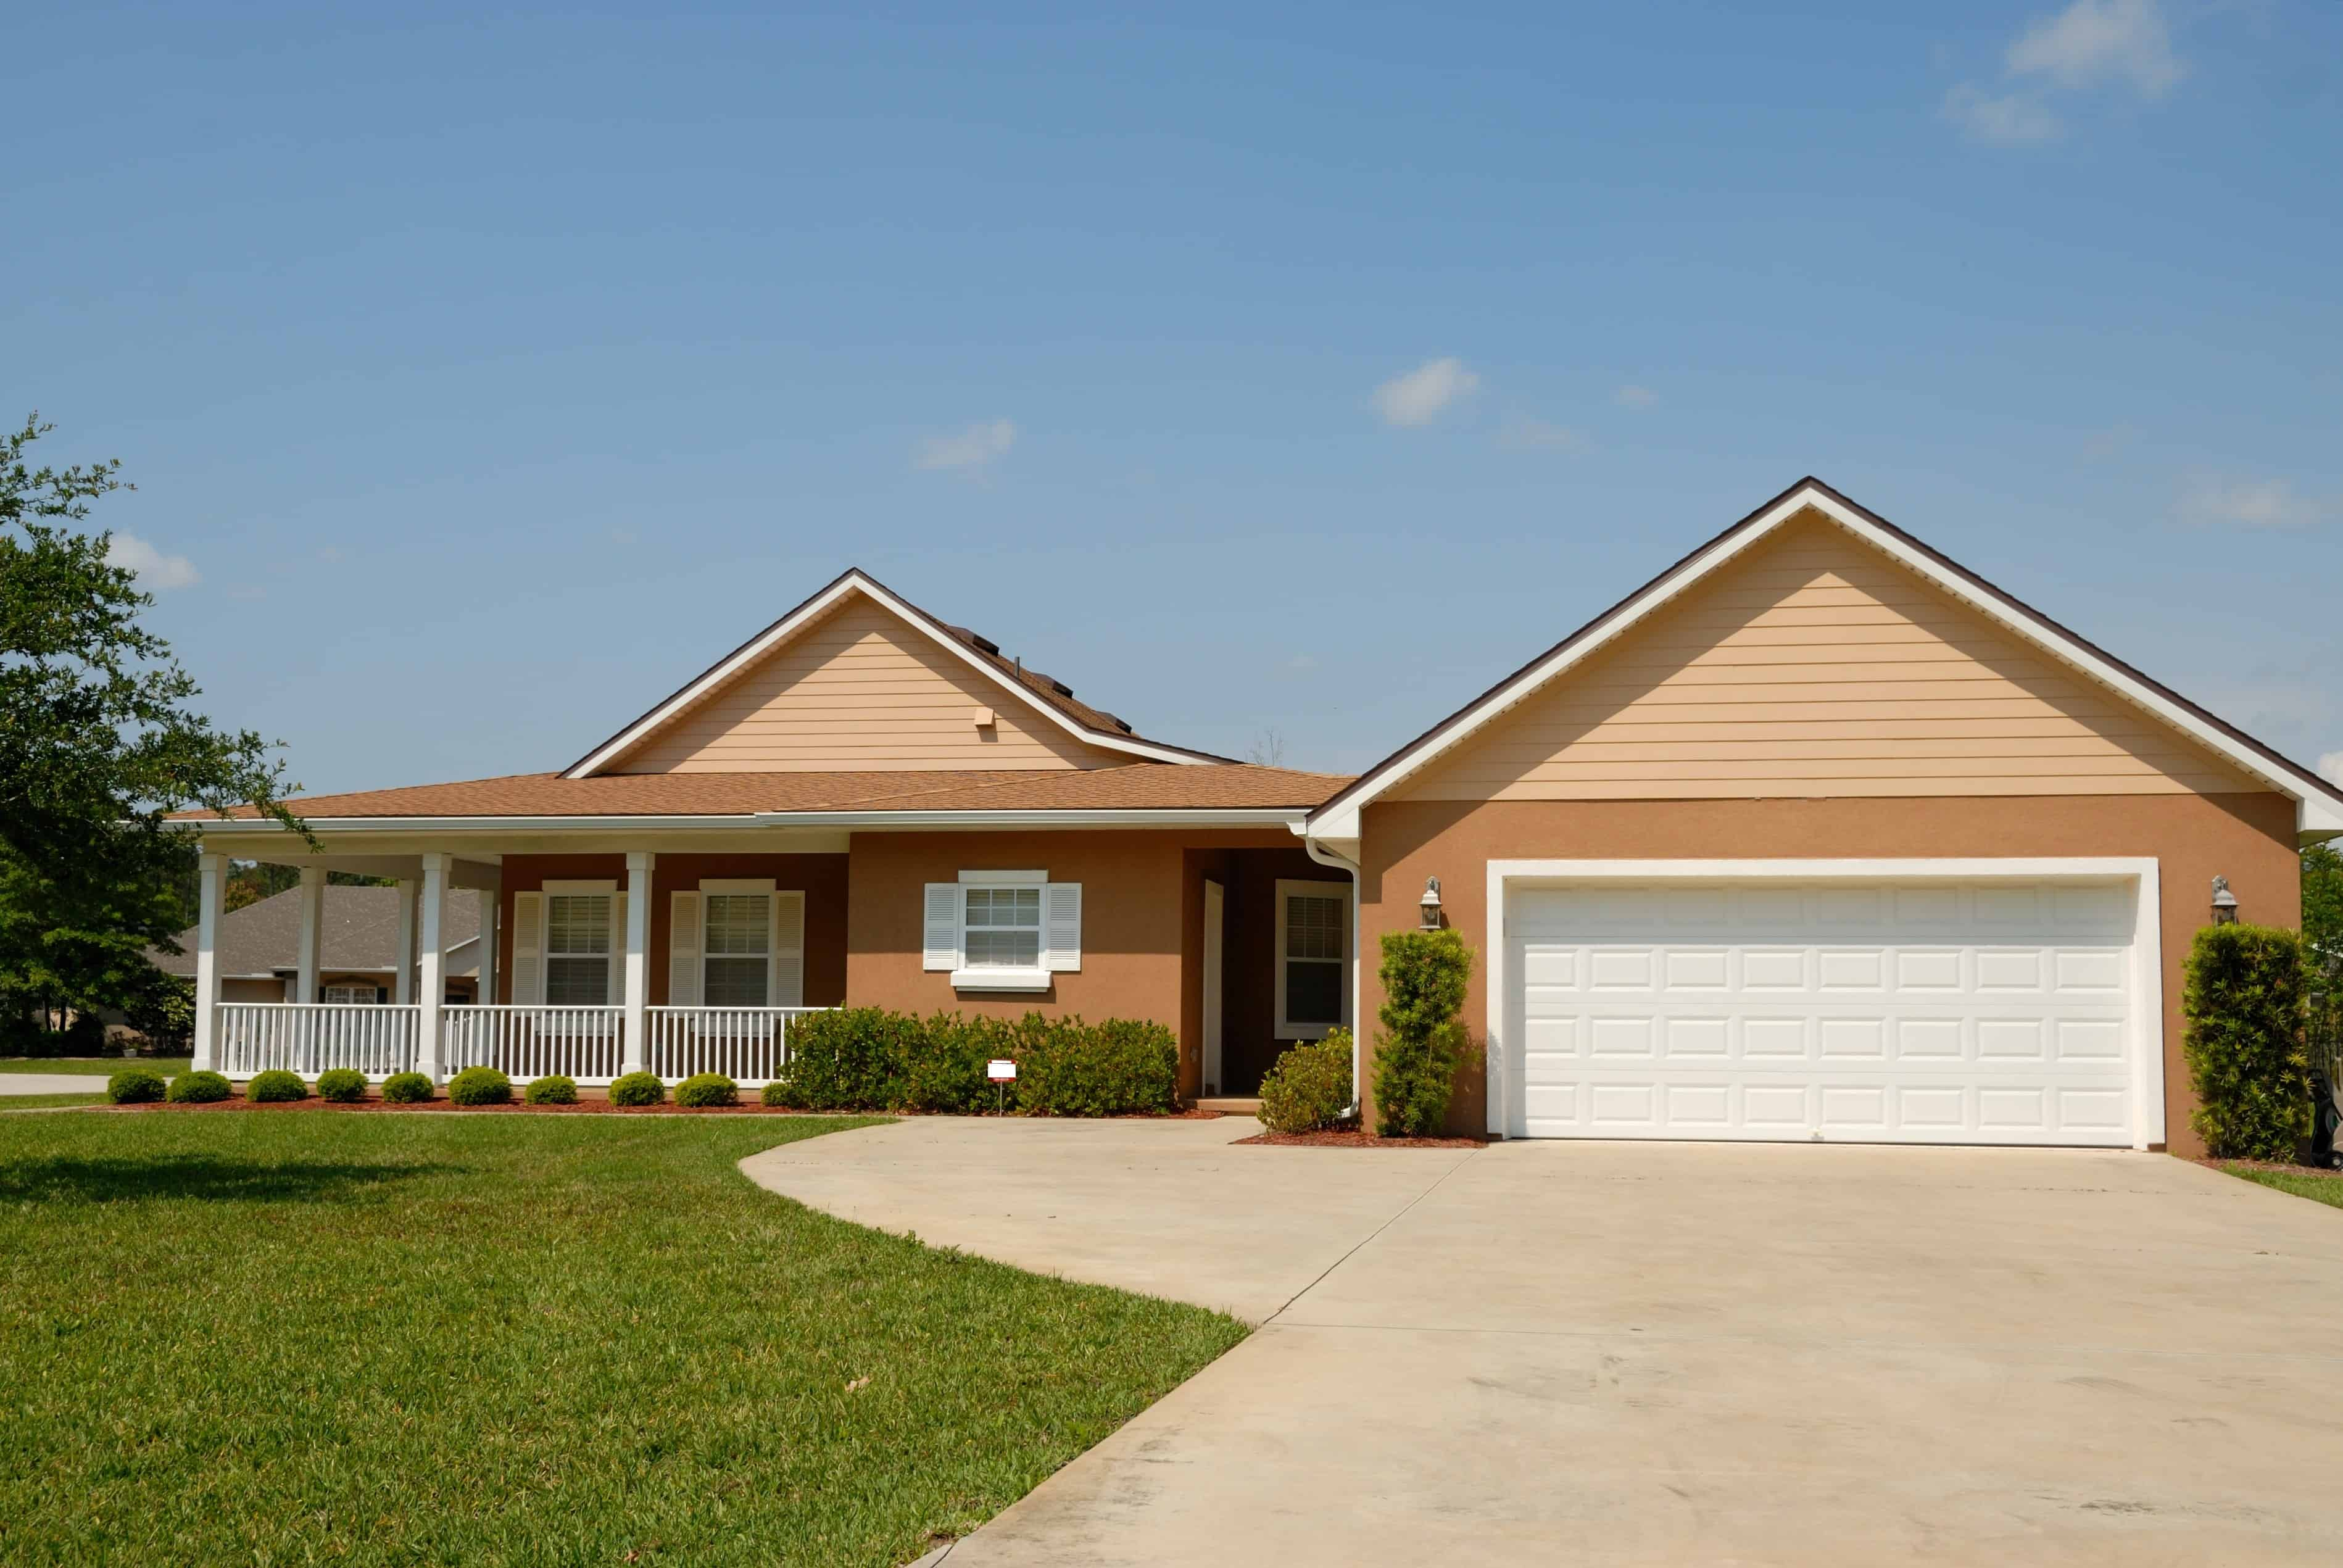 How Much Do Garage Doors Cost To Replace